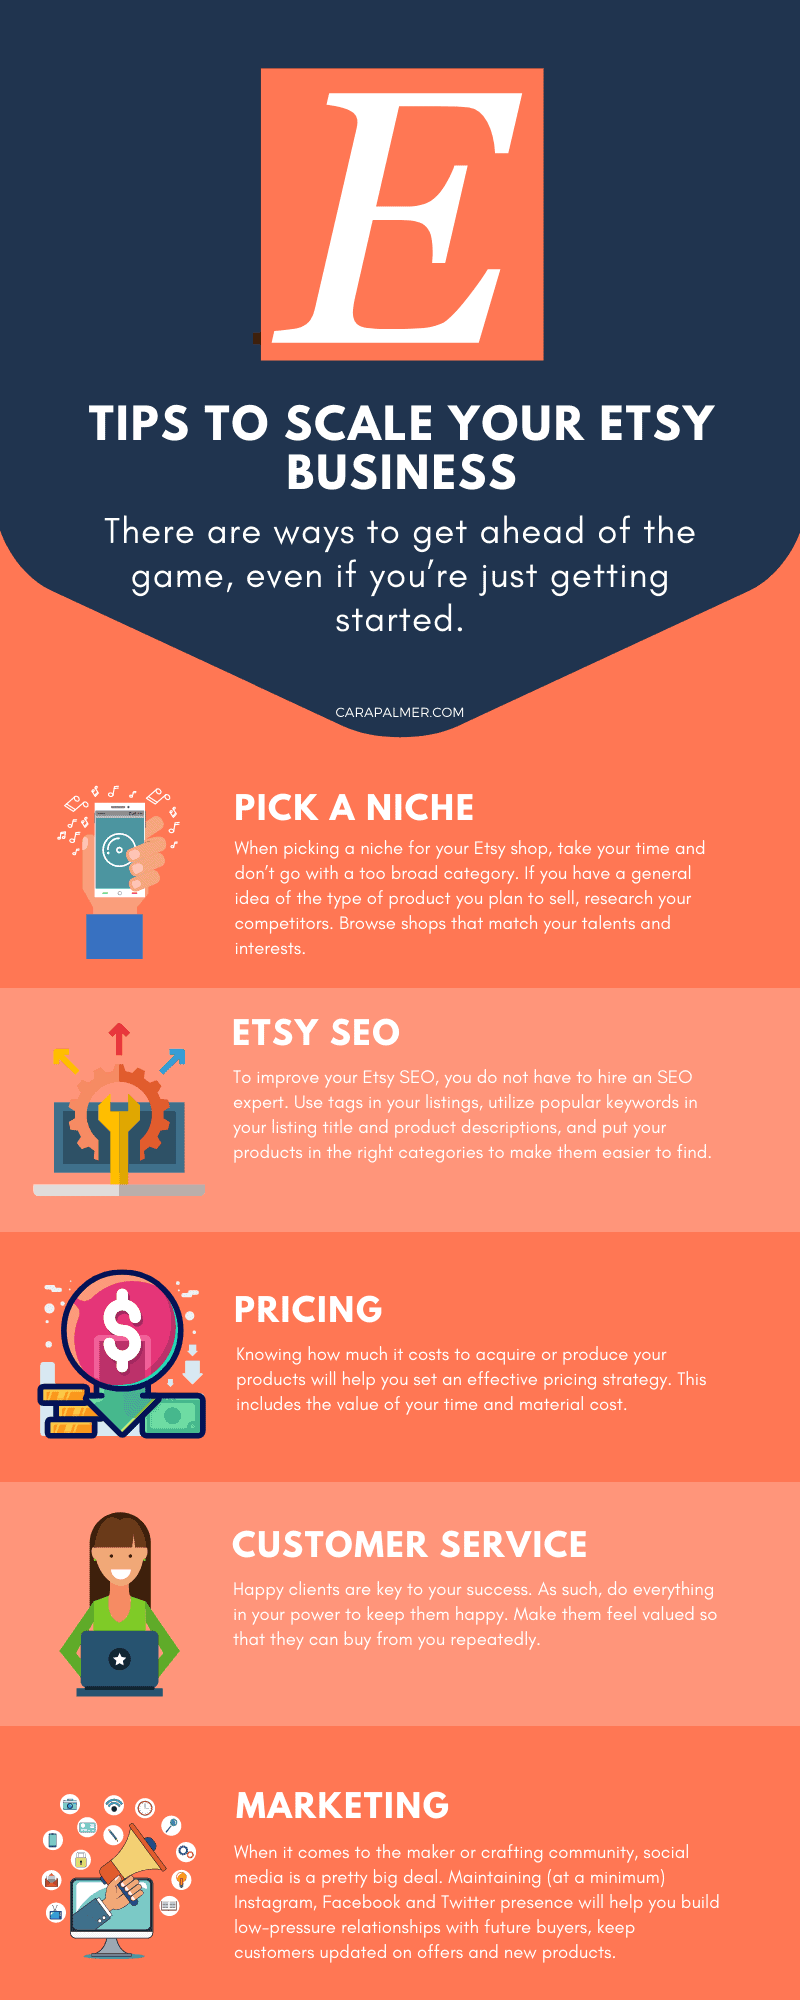 5 tips to scale your etsy business